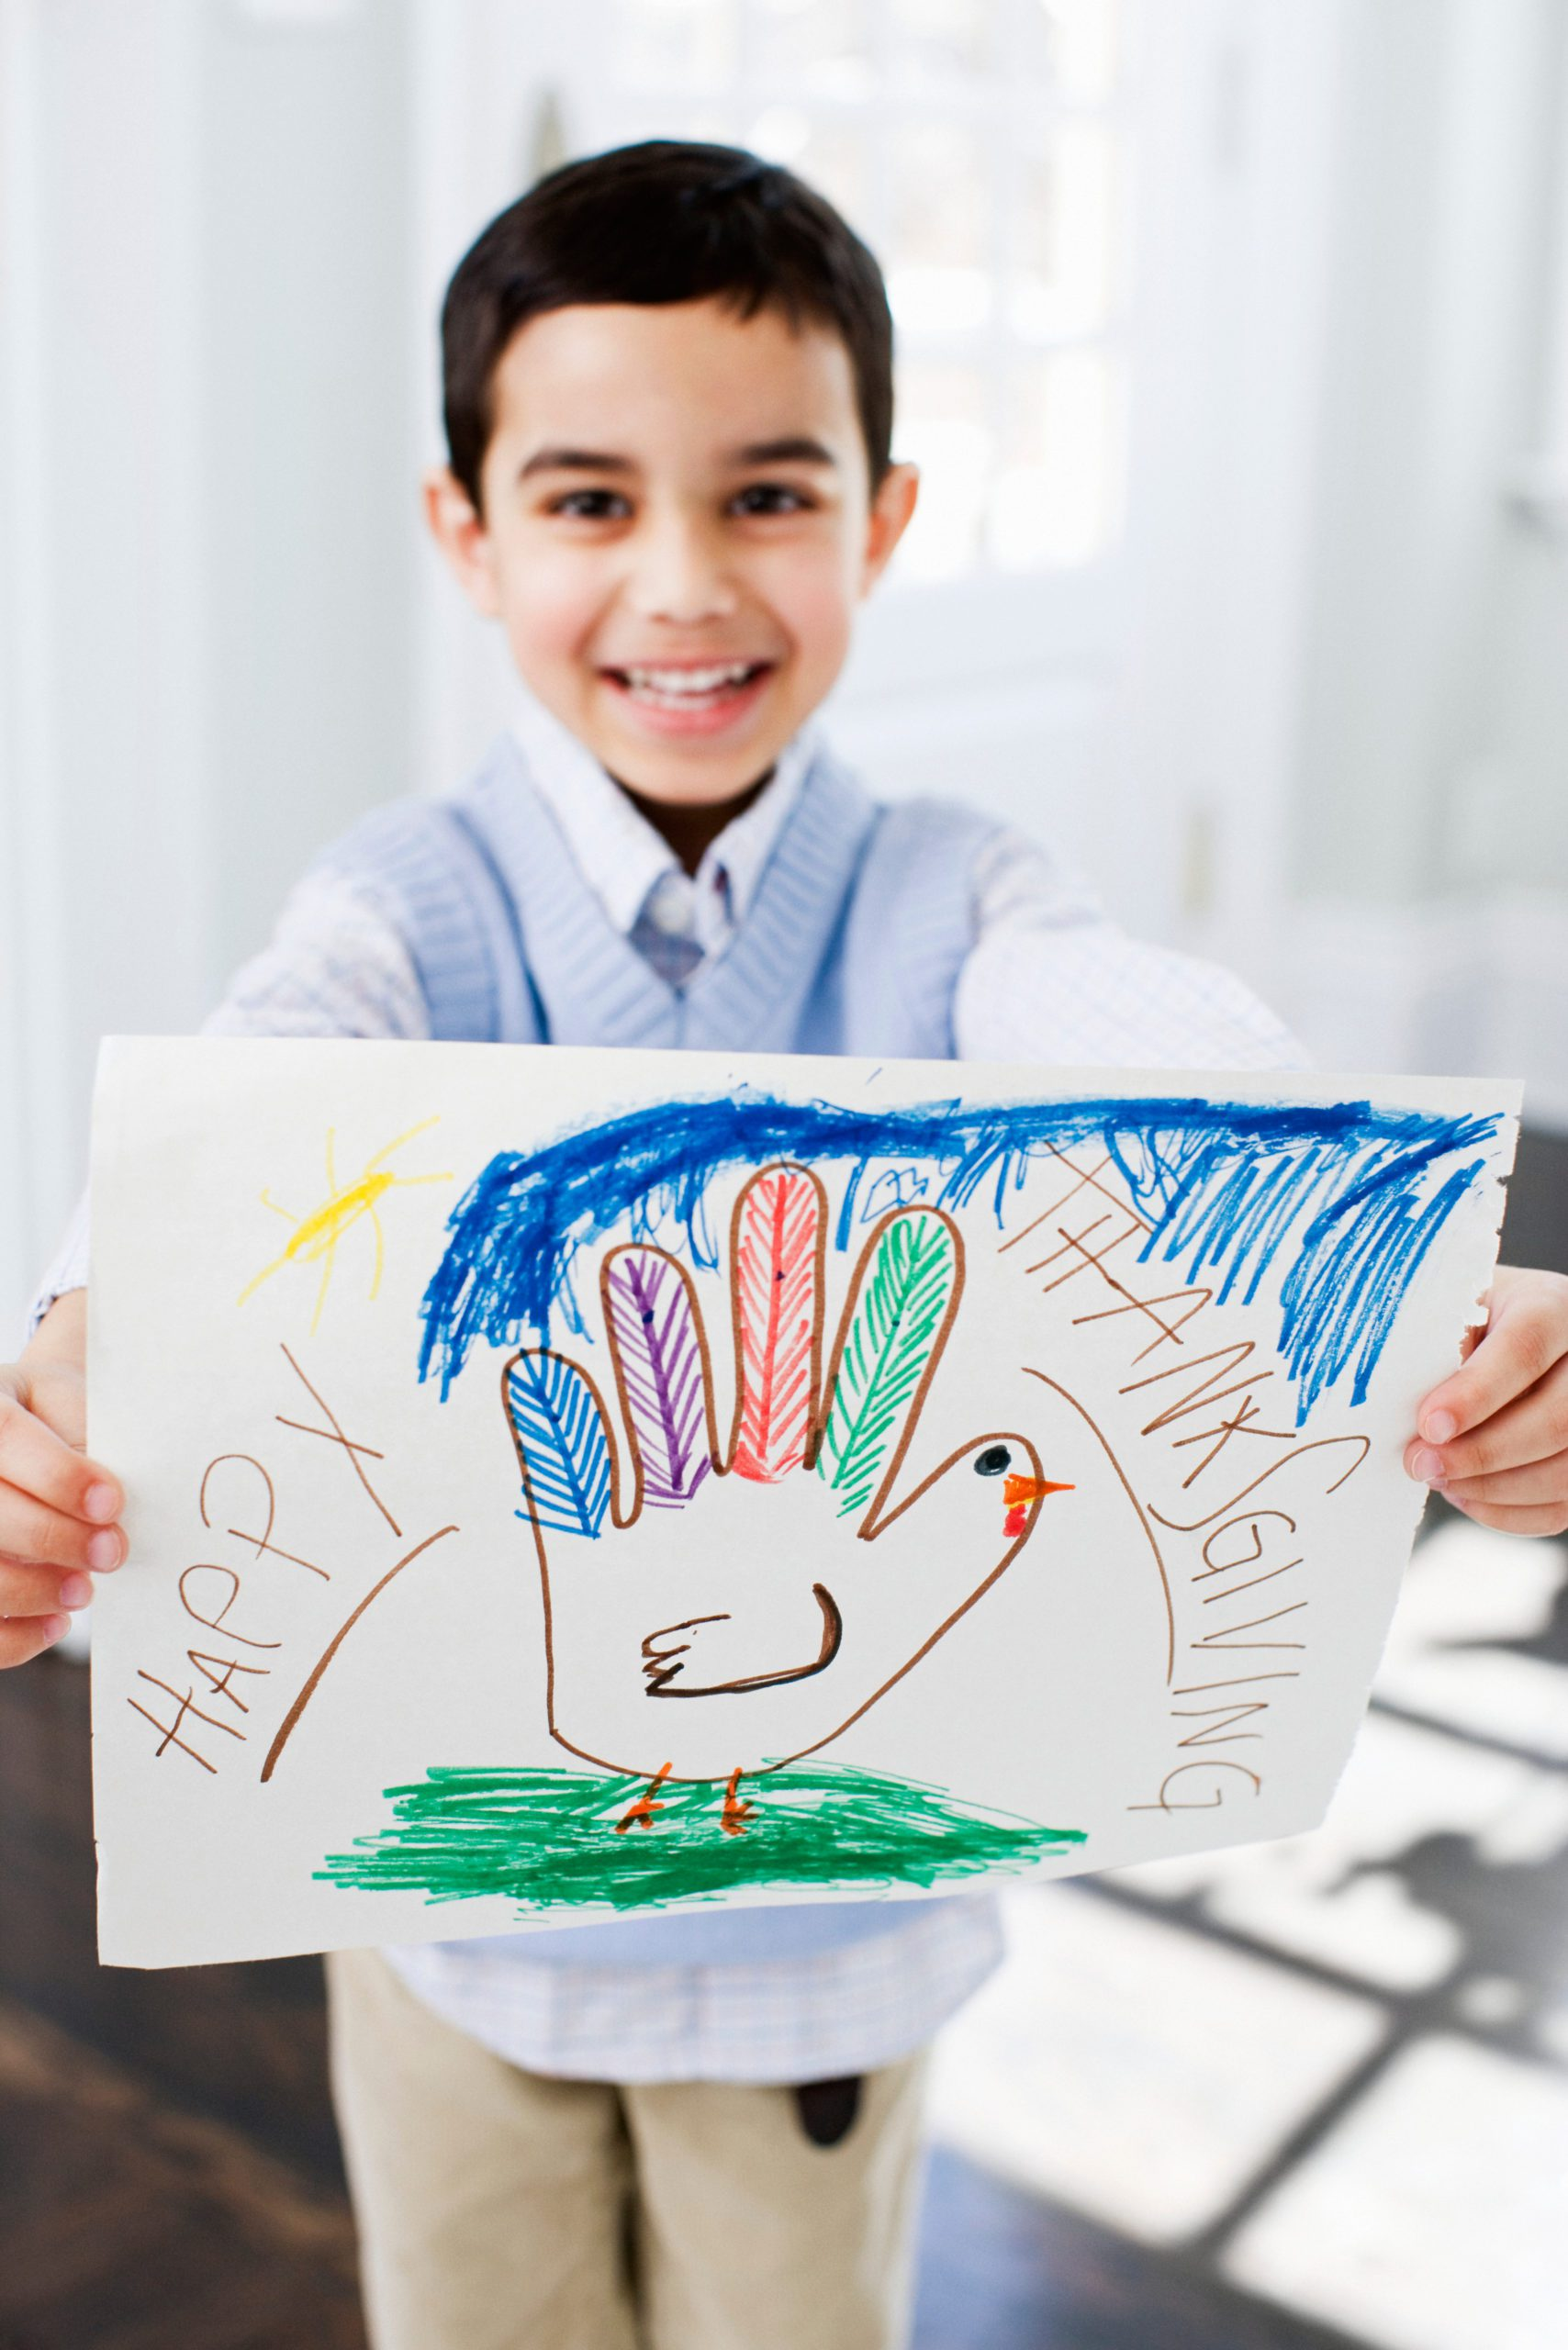 There's a pretty big gap between what kids learn about in school and the true meaning. learn how to get them excited for Thanksgiving! #thanksgiving #kidsactivities #holiday #thanful #parenting